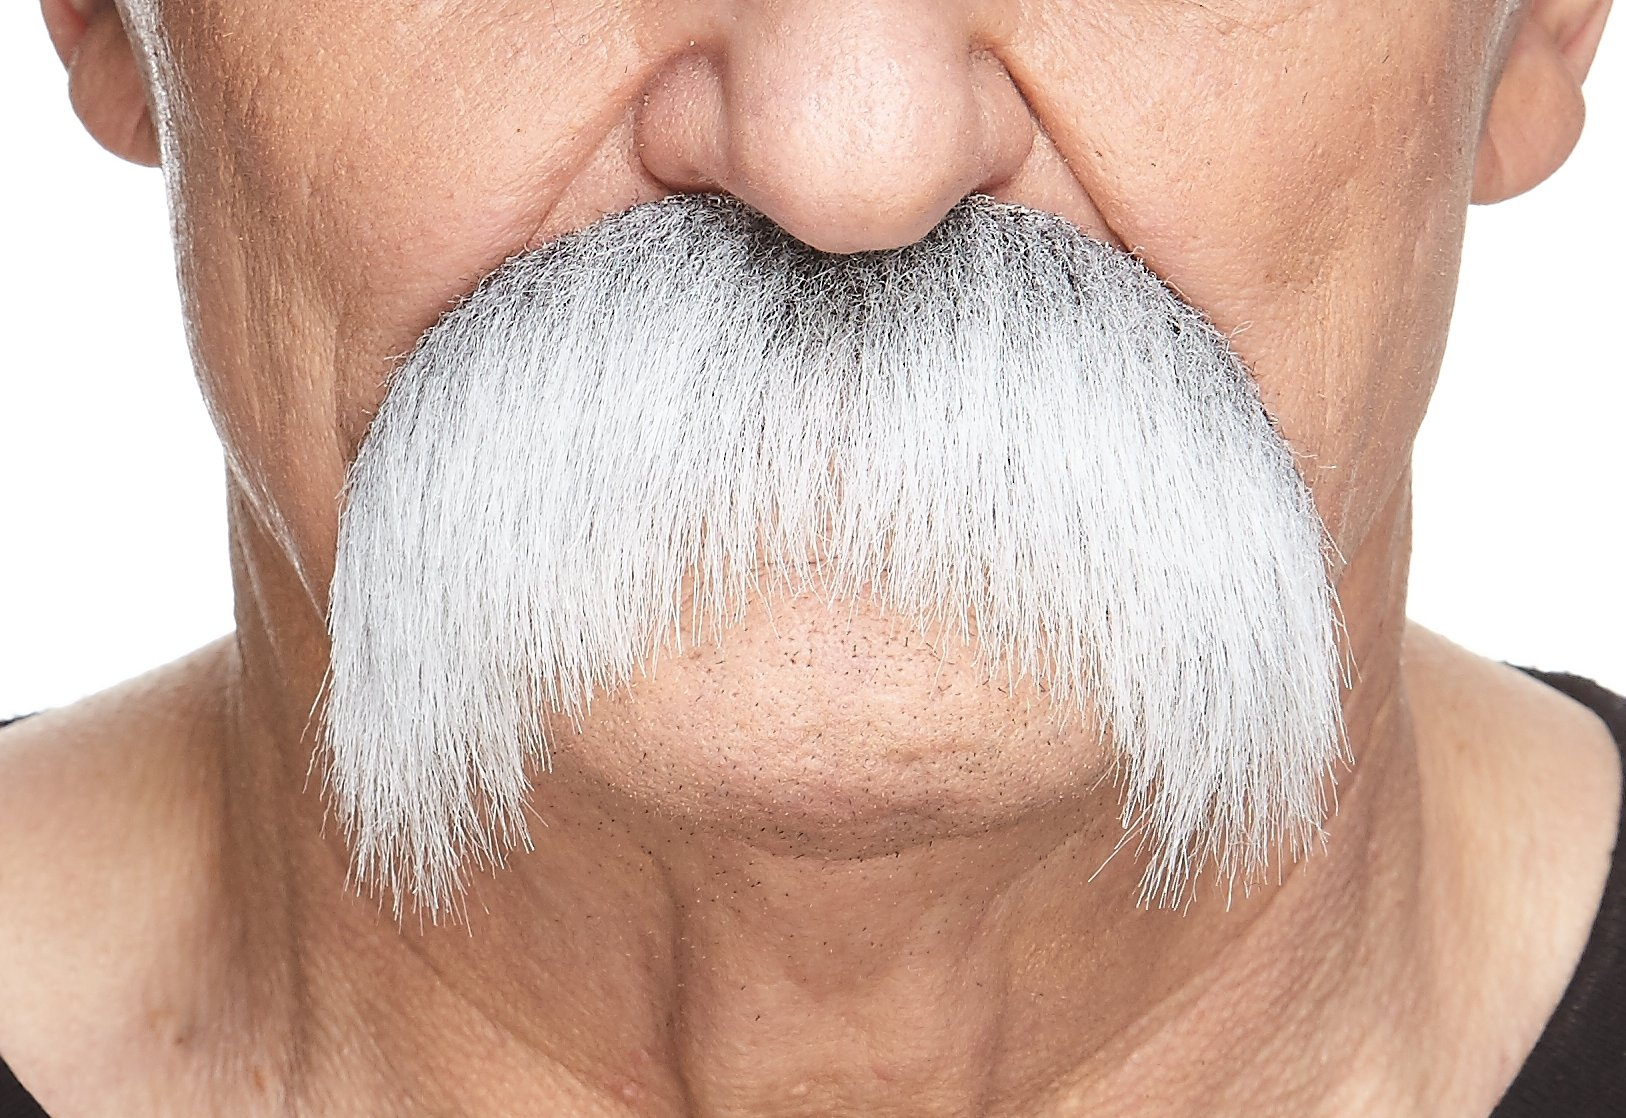 Mustaches Self Adhesive Fake Mustache, Novelty, Walrus False Facial Hair, Costume Accessory for Adults, Costume Accessory for Adults, Gray with White Color